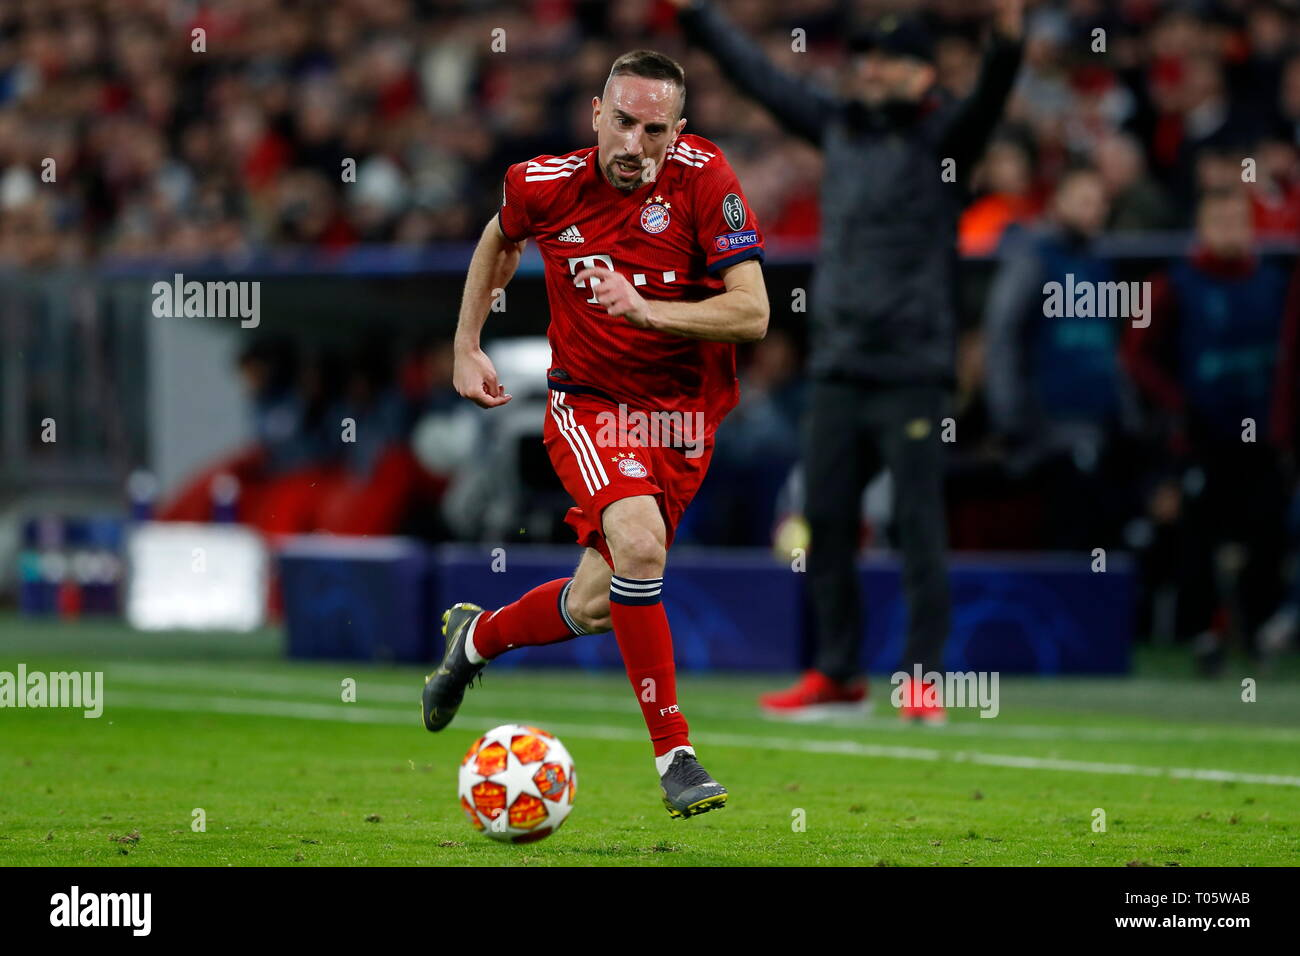 Munich Germany 13th Mar 2019 Franck Ribery Bayern